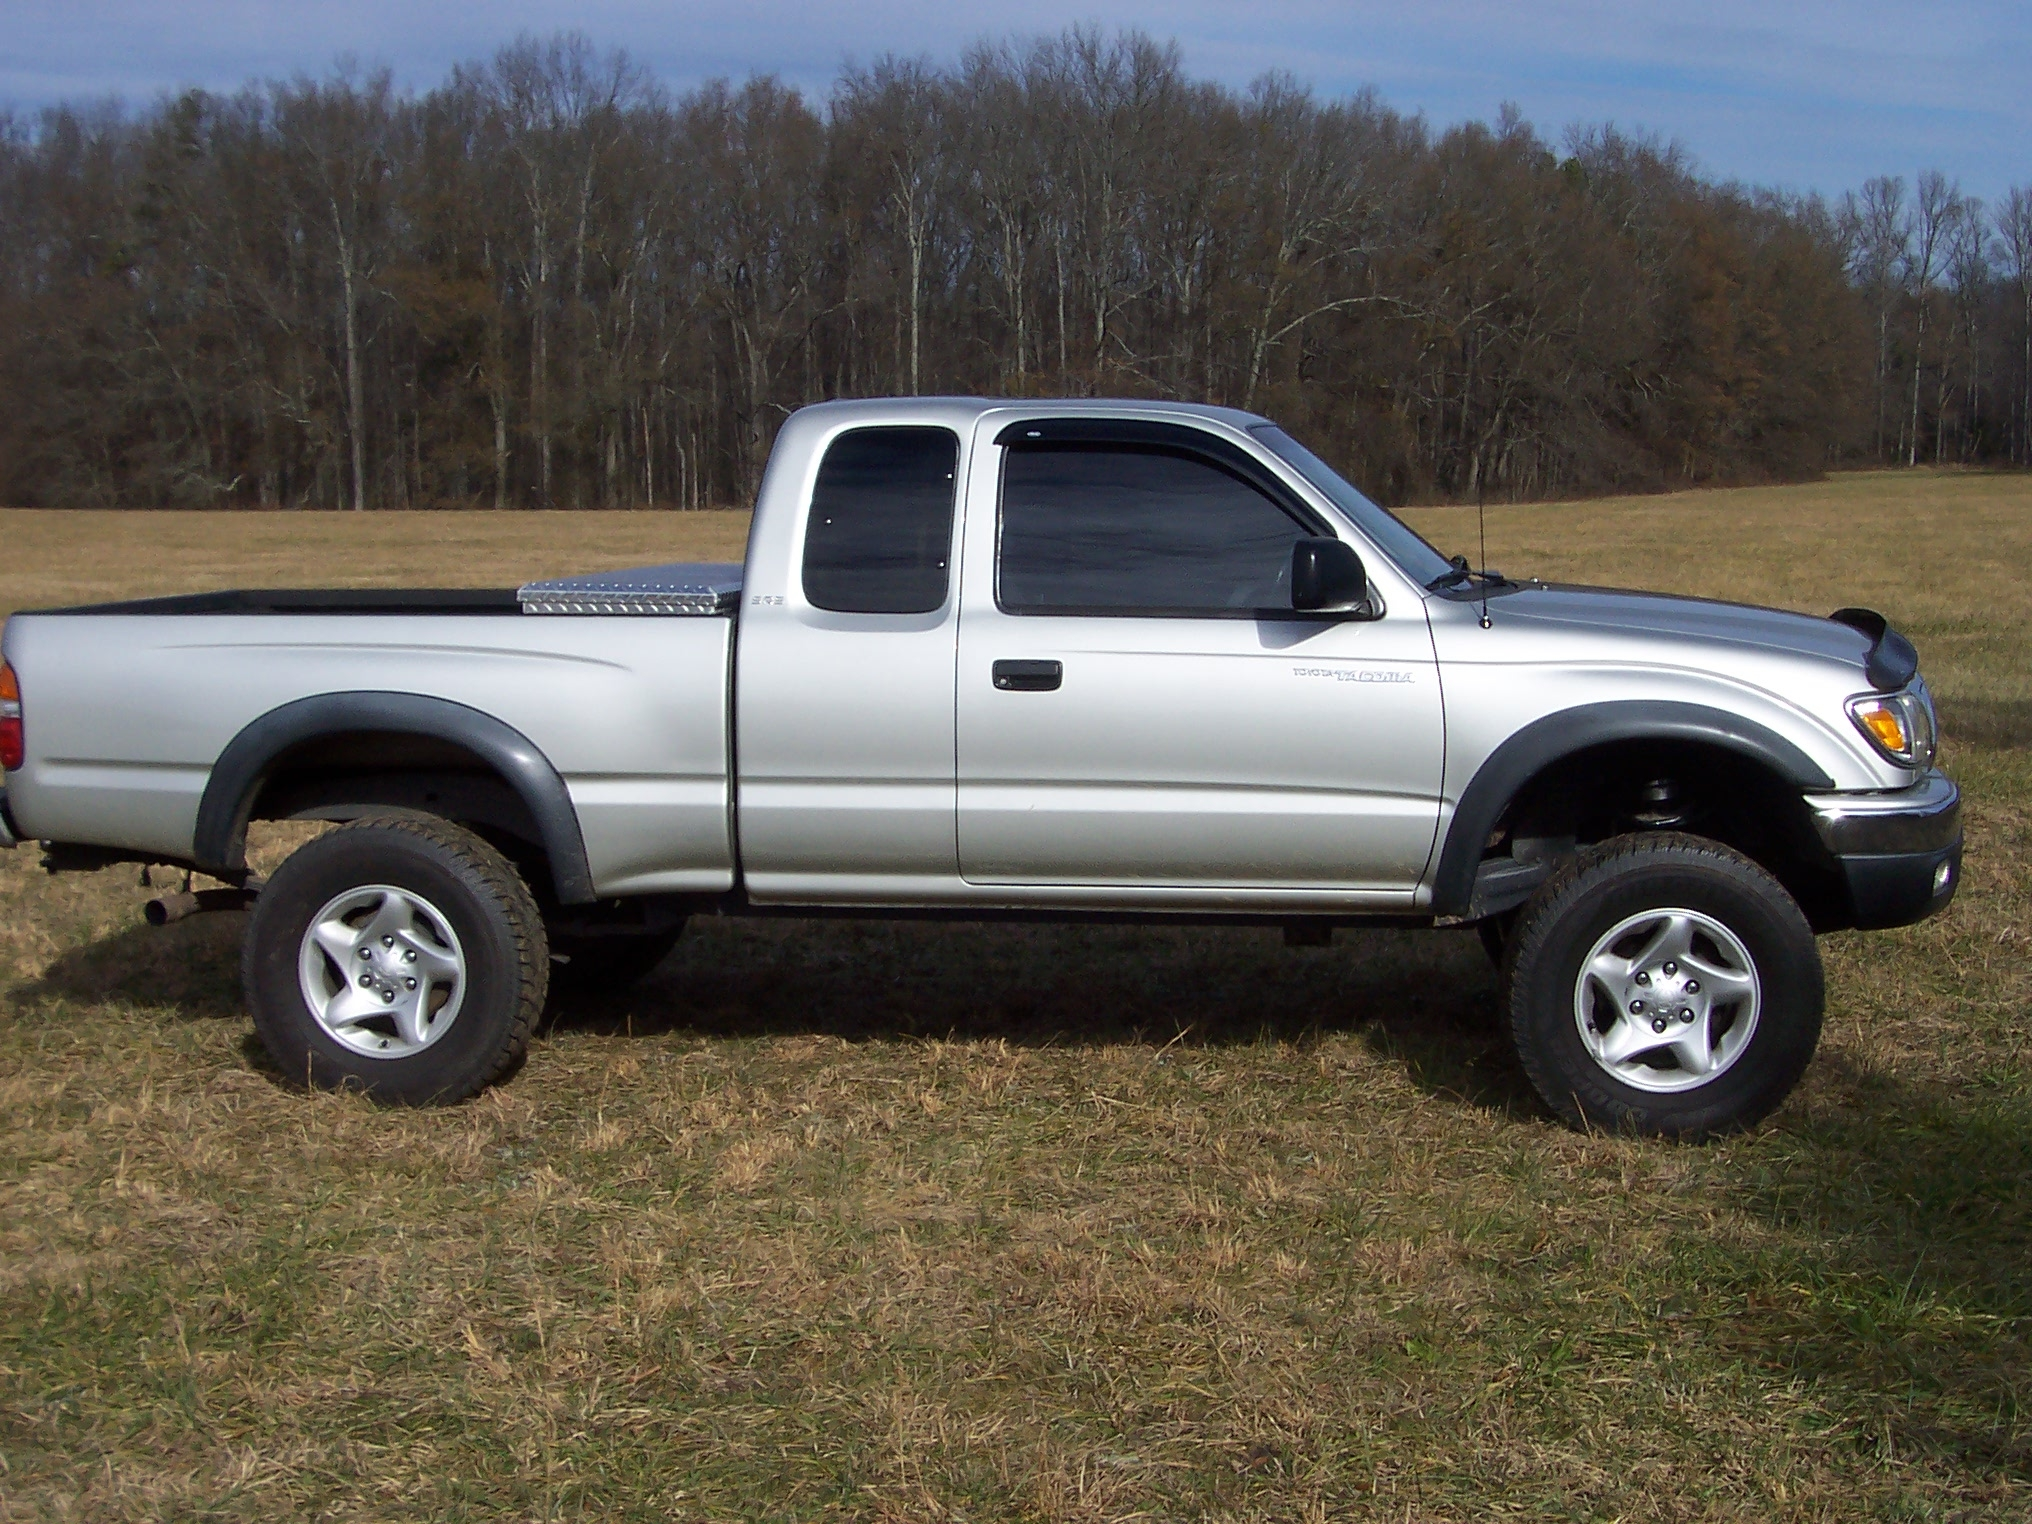 dbagwell 2001 toyota tacoma access cab specs photos modification info at cardomain. Black Bedroom Furniture Sets. Home Design Ideas